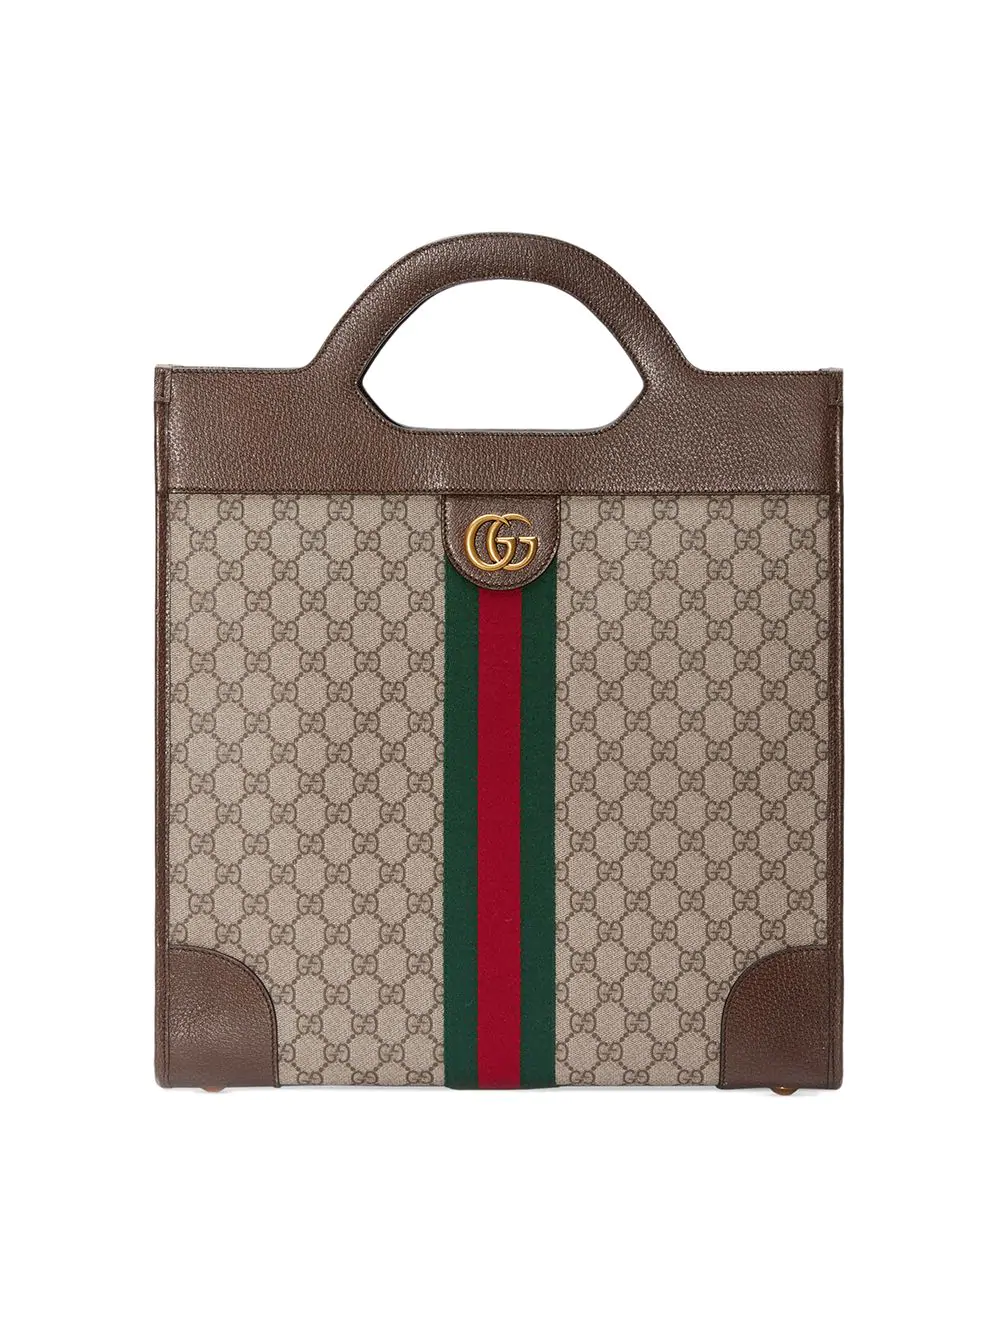 Gucci Ophidia Gg Medium Top Handle Tote In Brown